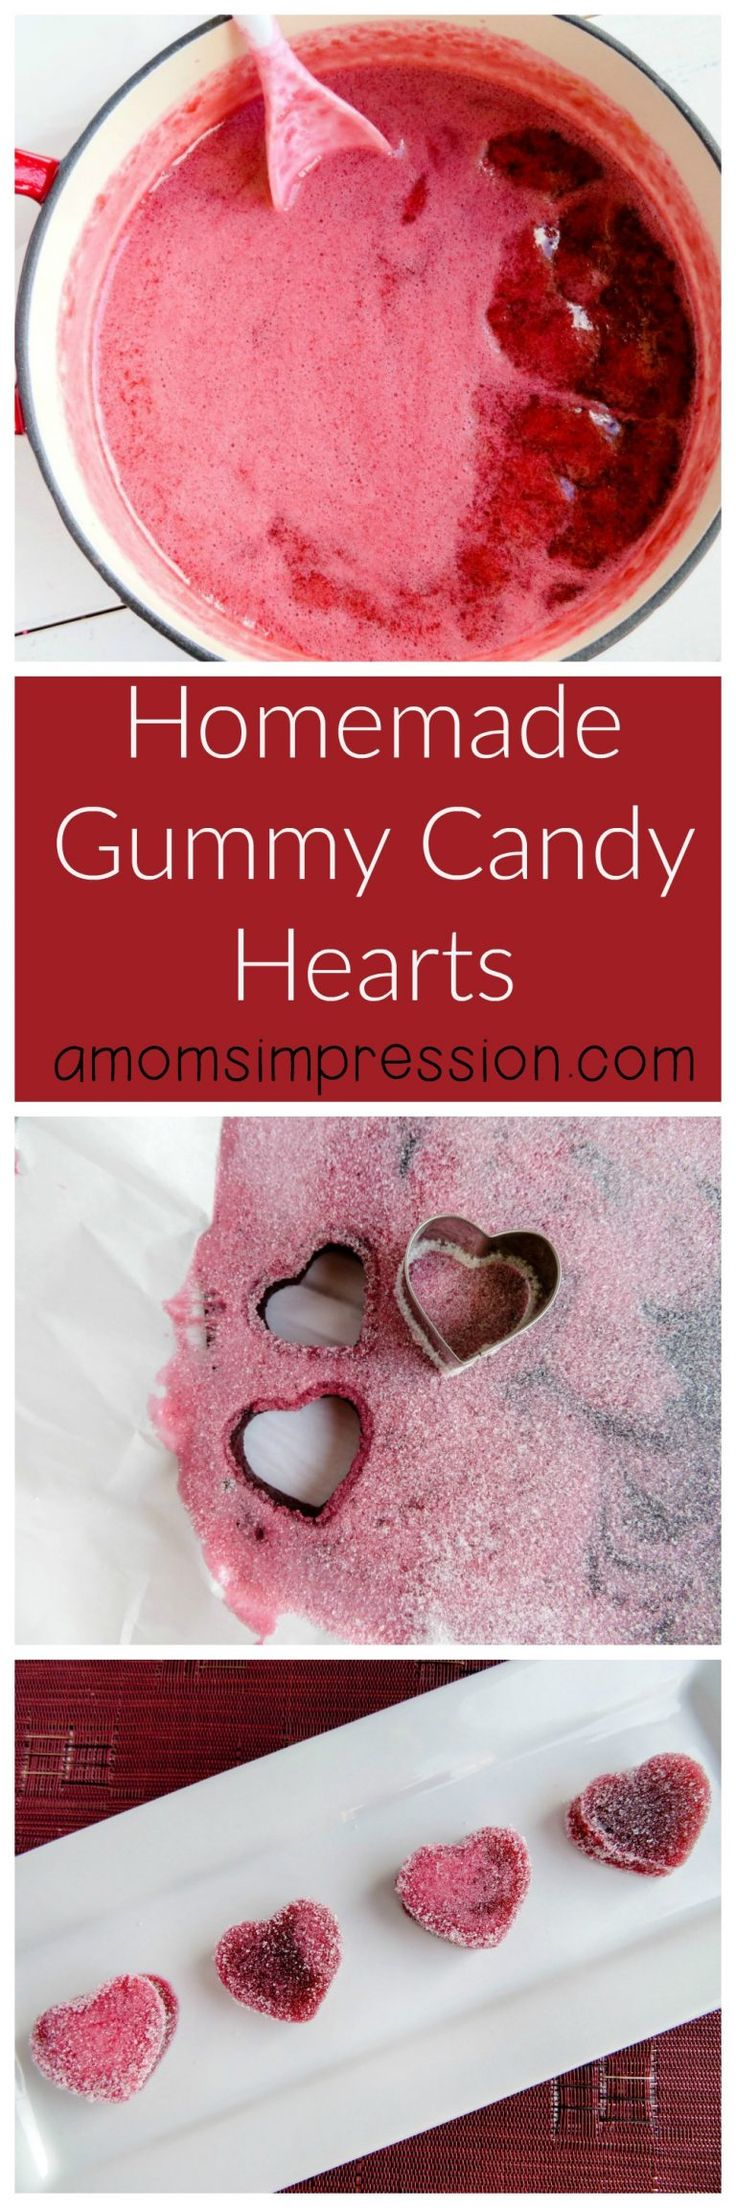 Homemade gummy candy made into hearts. An easy Valentine's Day treat idea.